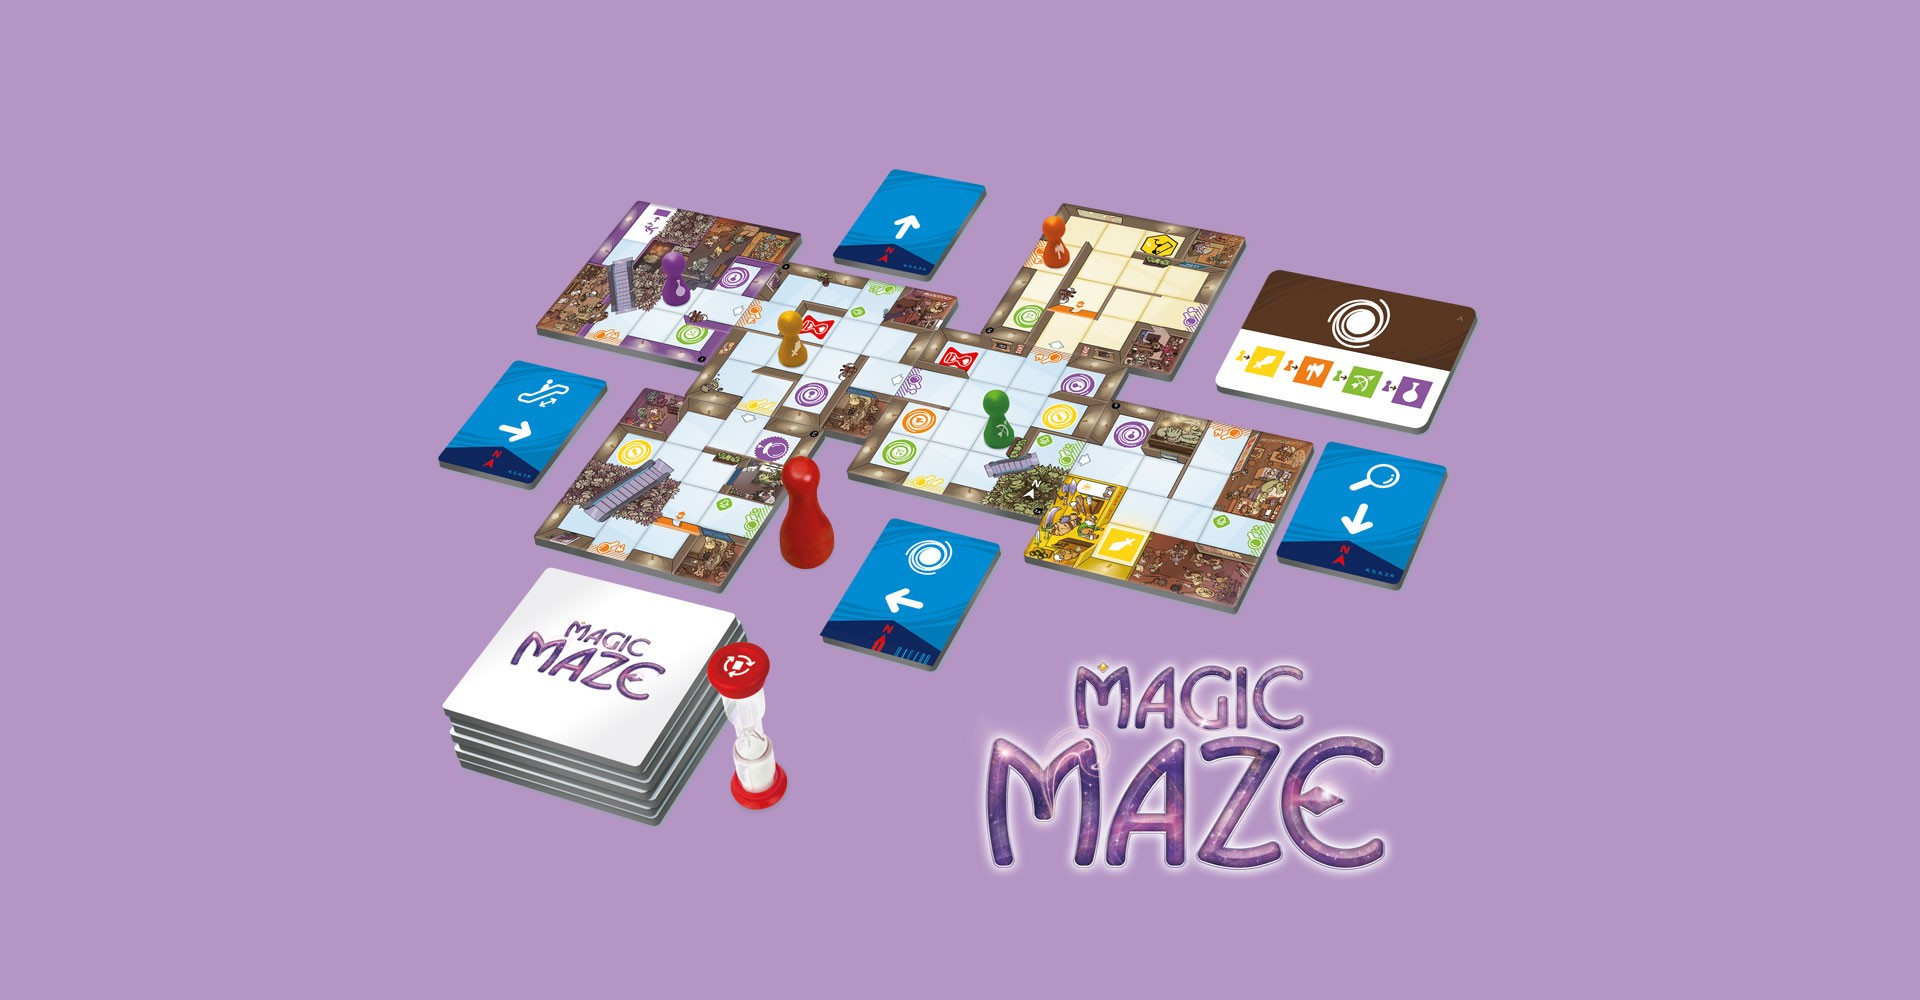 Mise en situation de Magic Maze